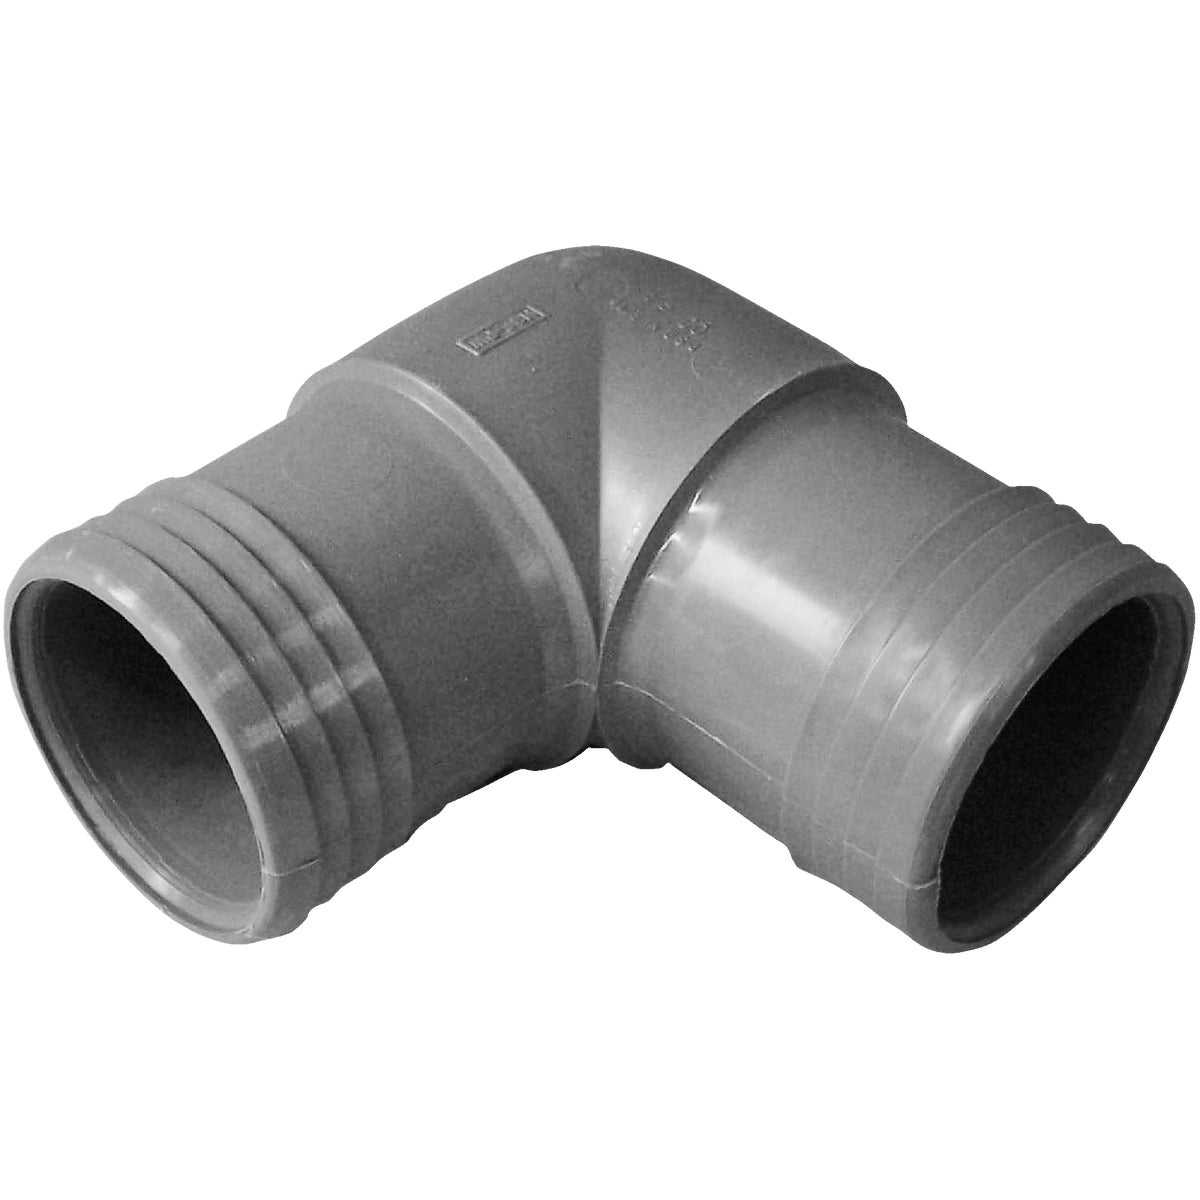 "2"" POLY INSERT ELBOW"